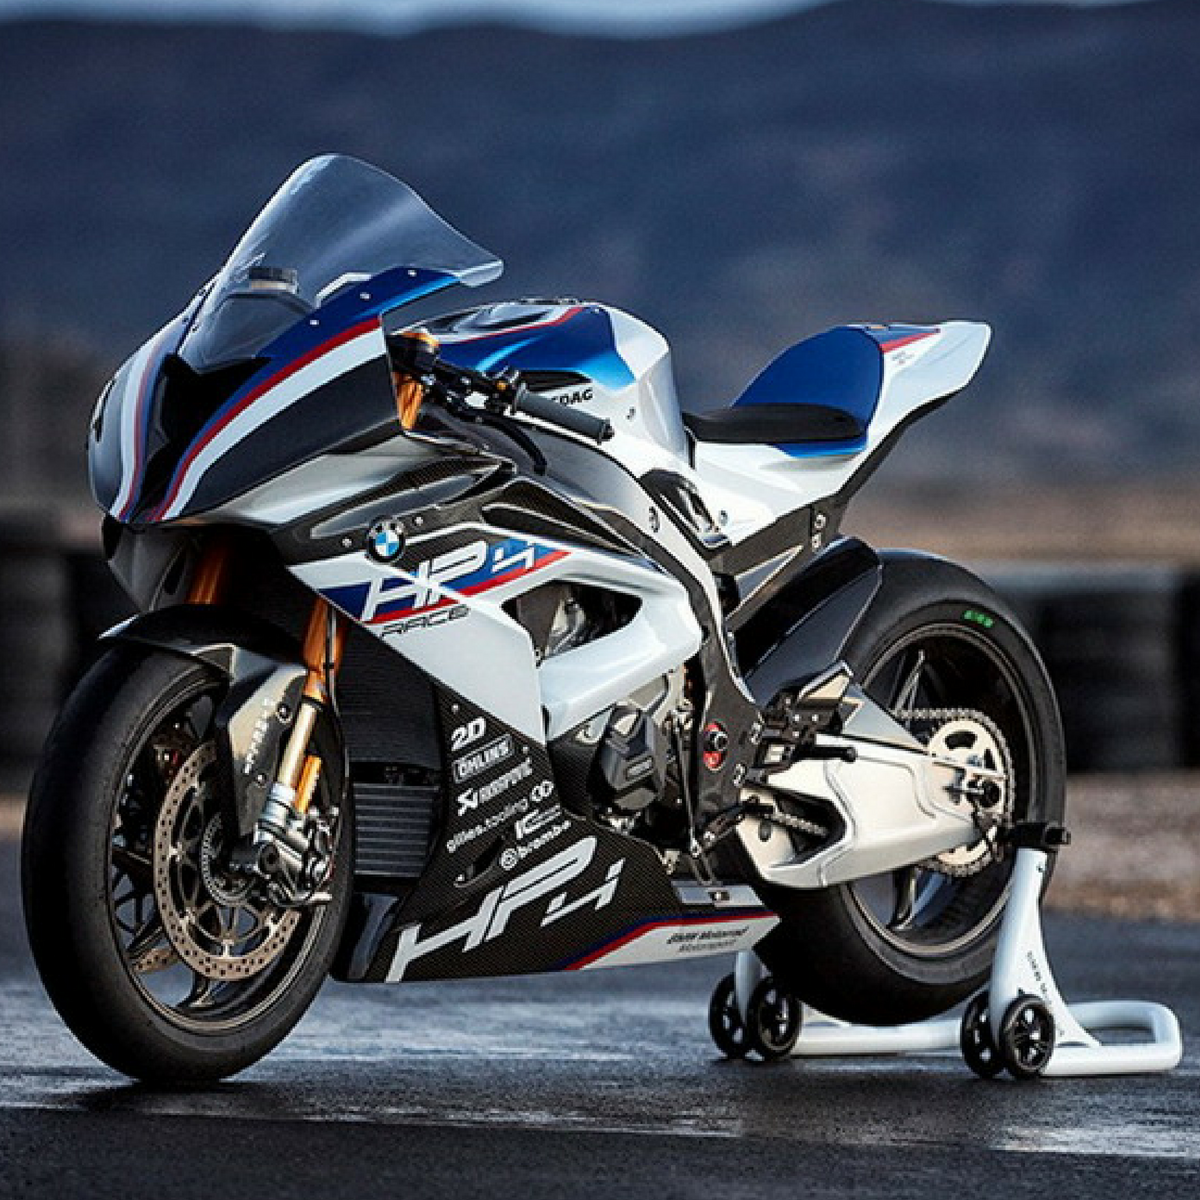 Bmw Hp4 Race Limited Edition Superbike Launched At Inr 85 Lakhs In